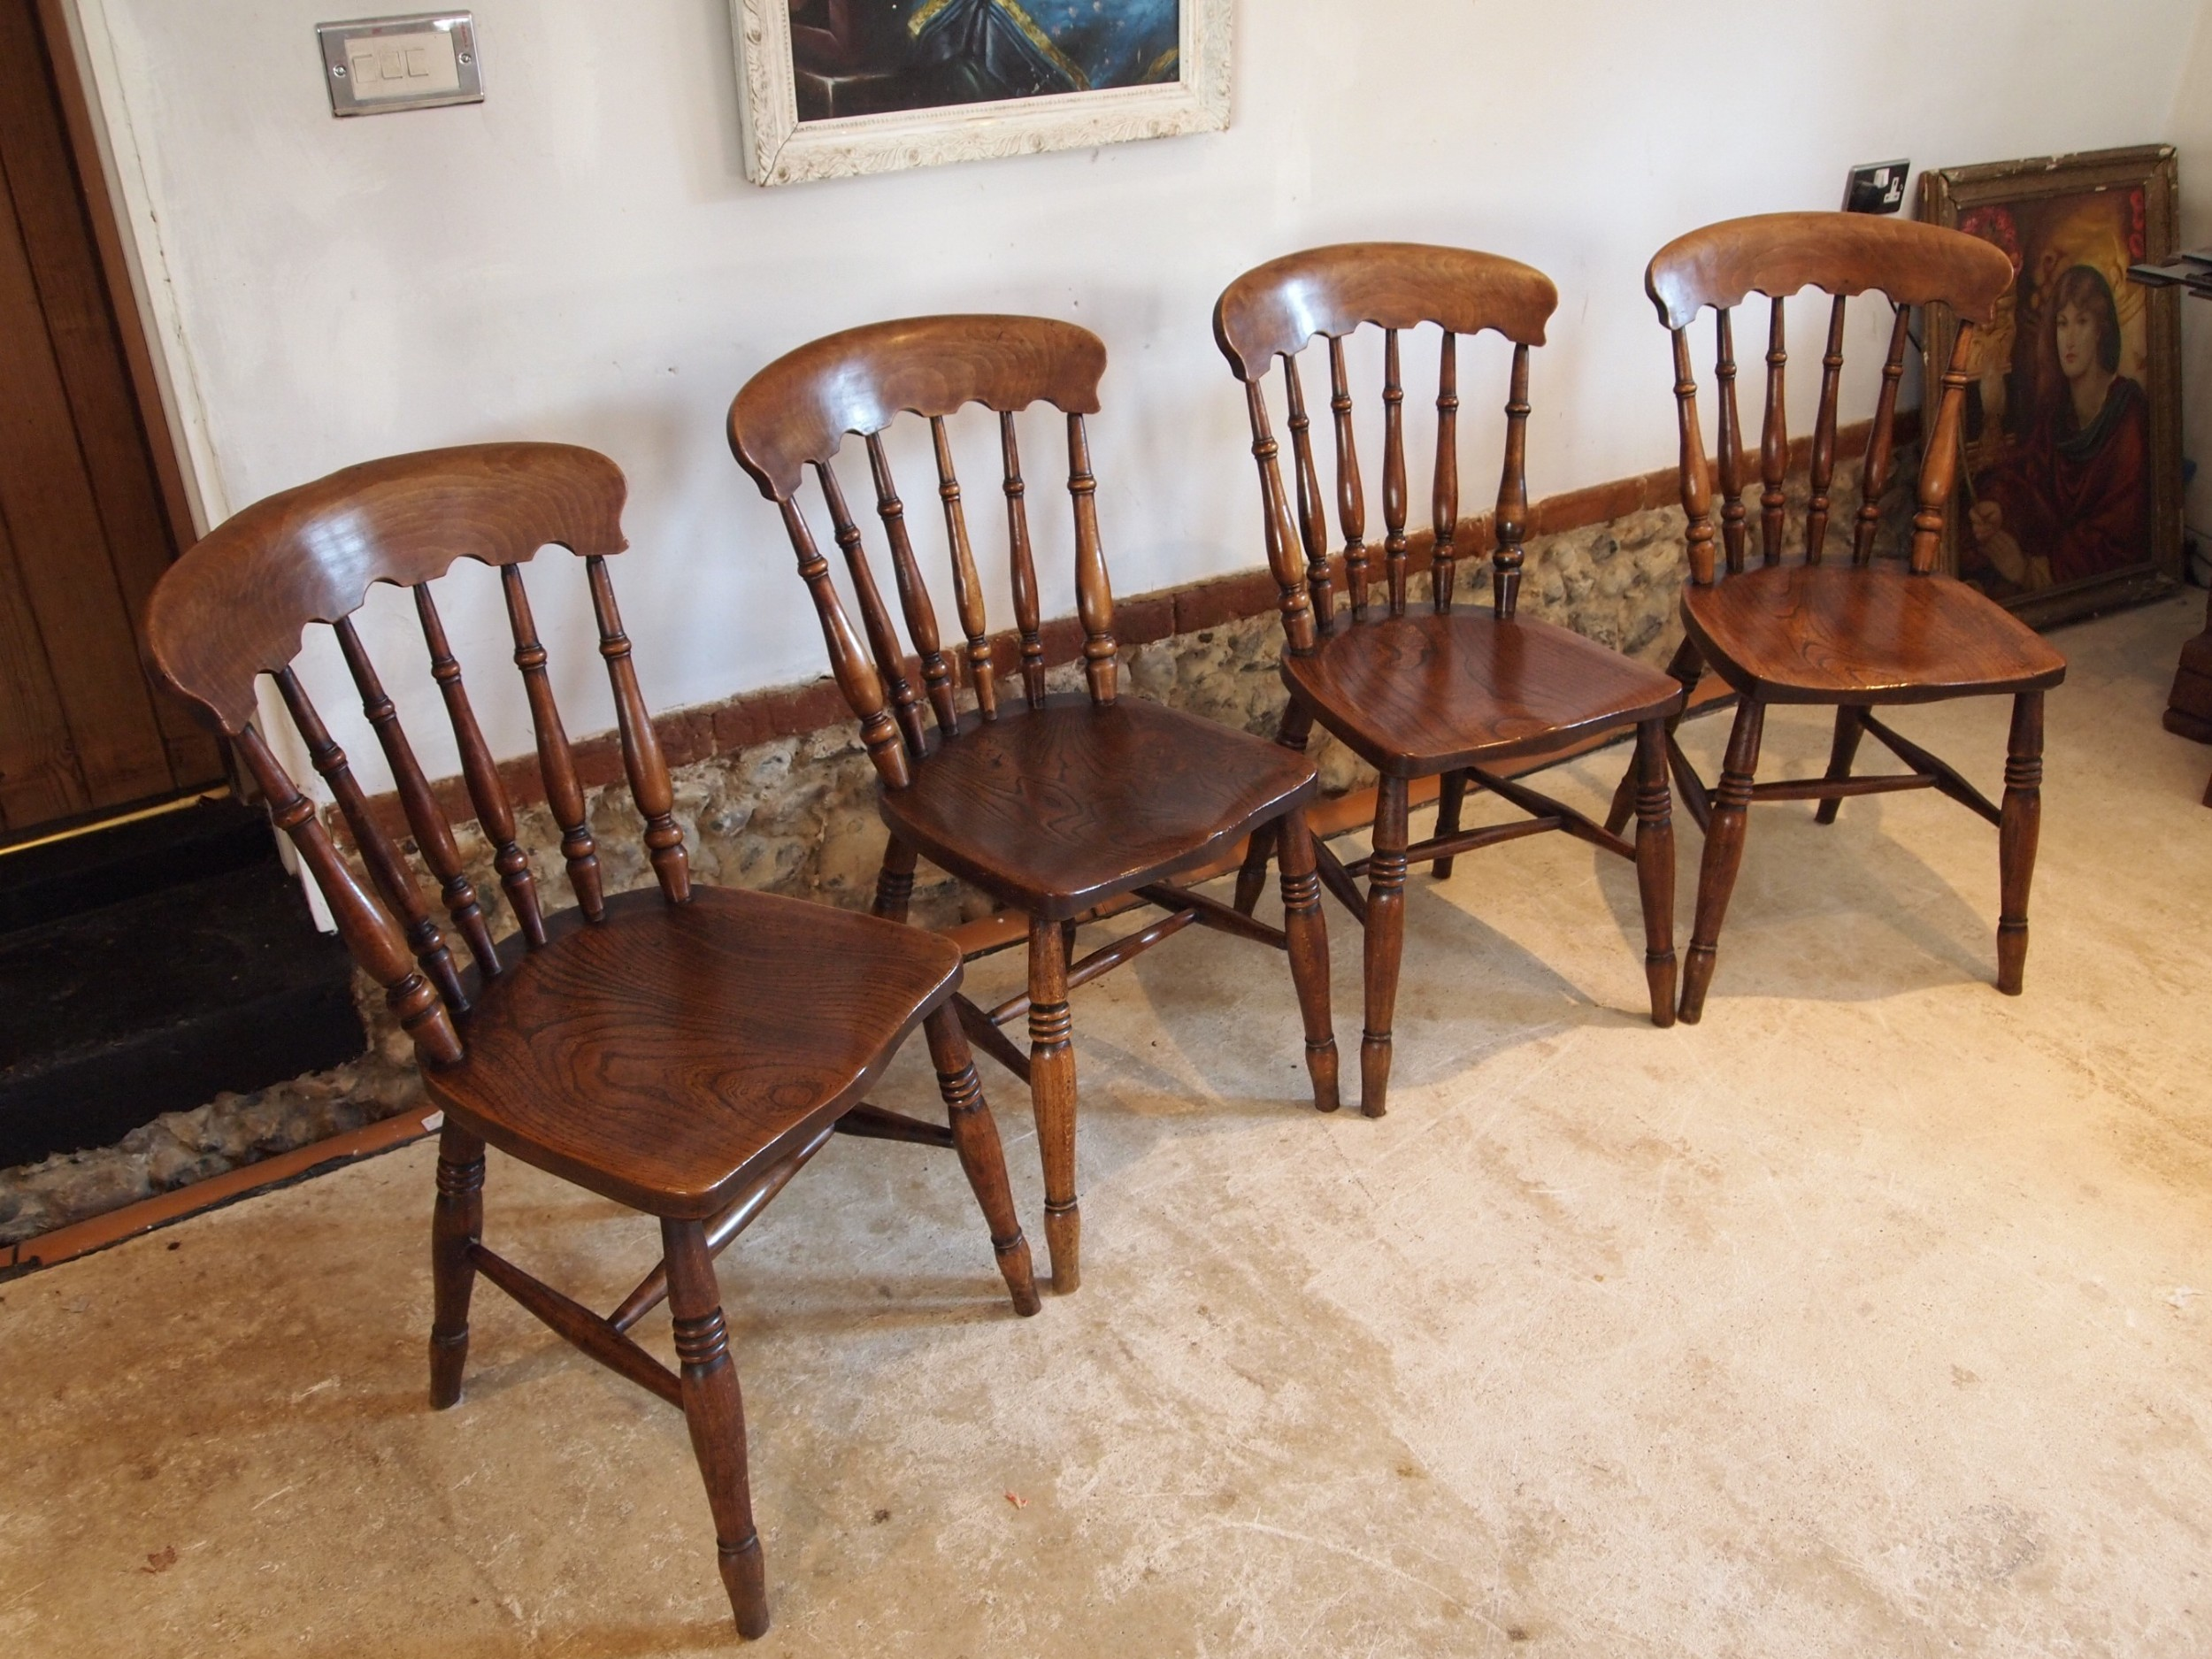 chairs set of 4 stunning windsor victorian kitchen chairs c1870